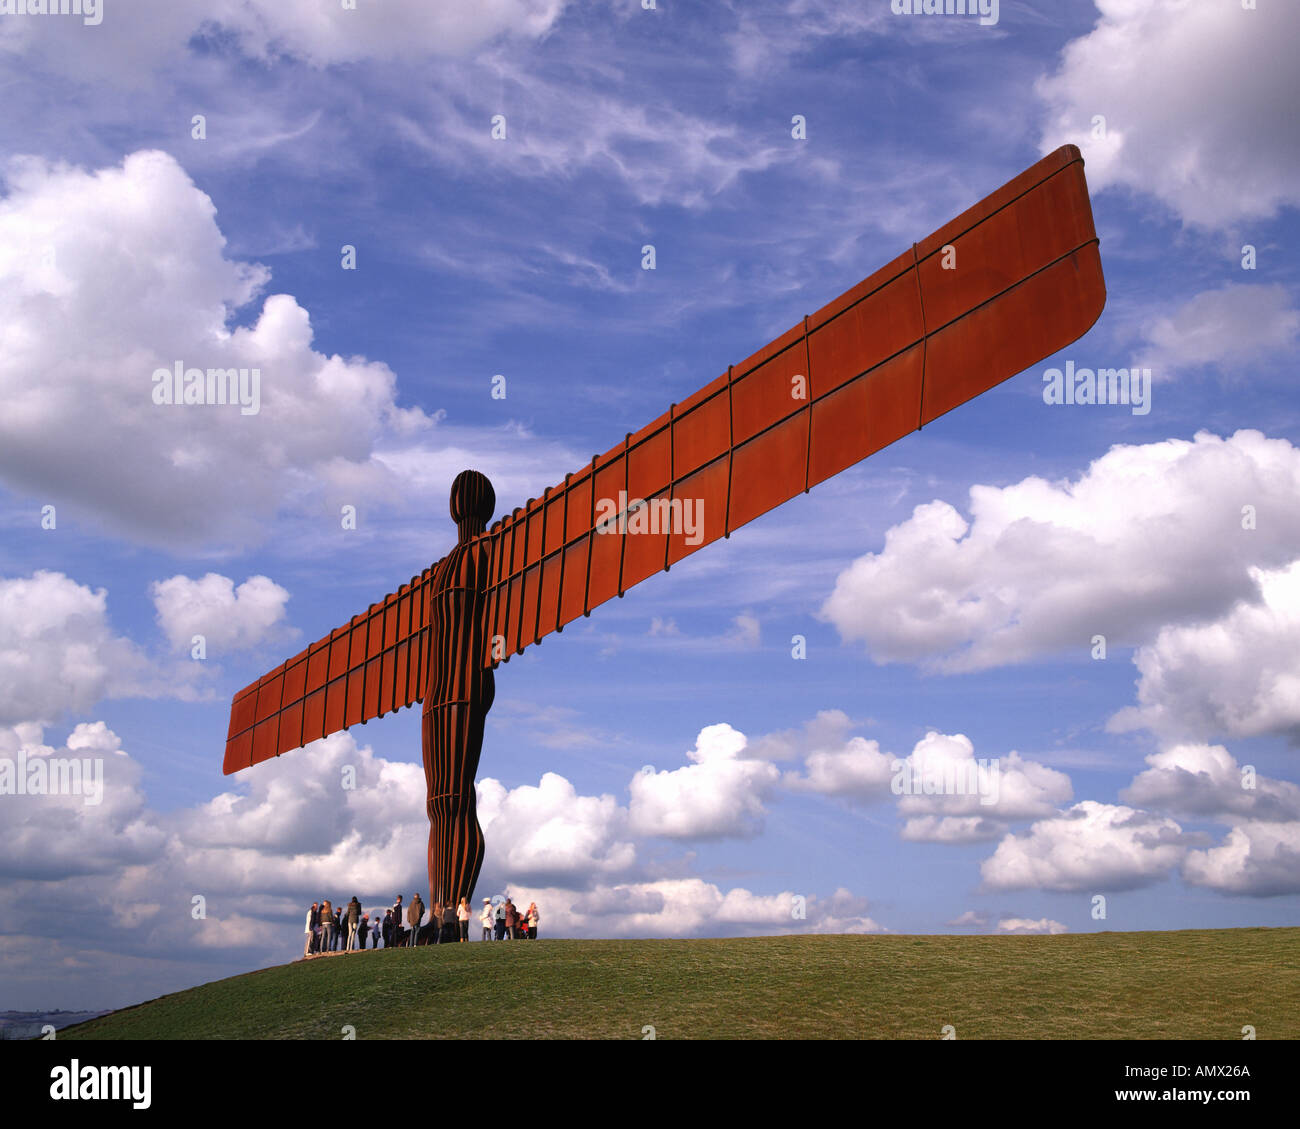 GB - TYNE AND WEAR: Angel of the North near Gateshead - Stock Image